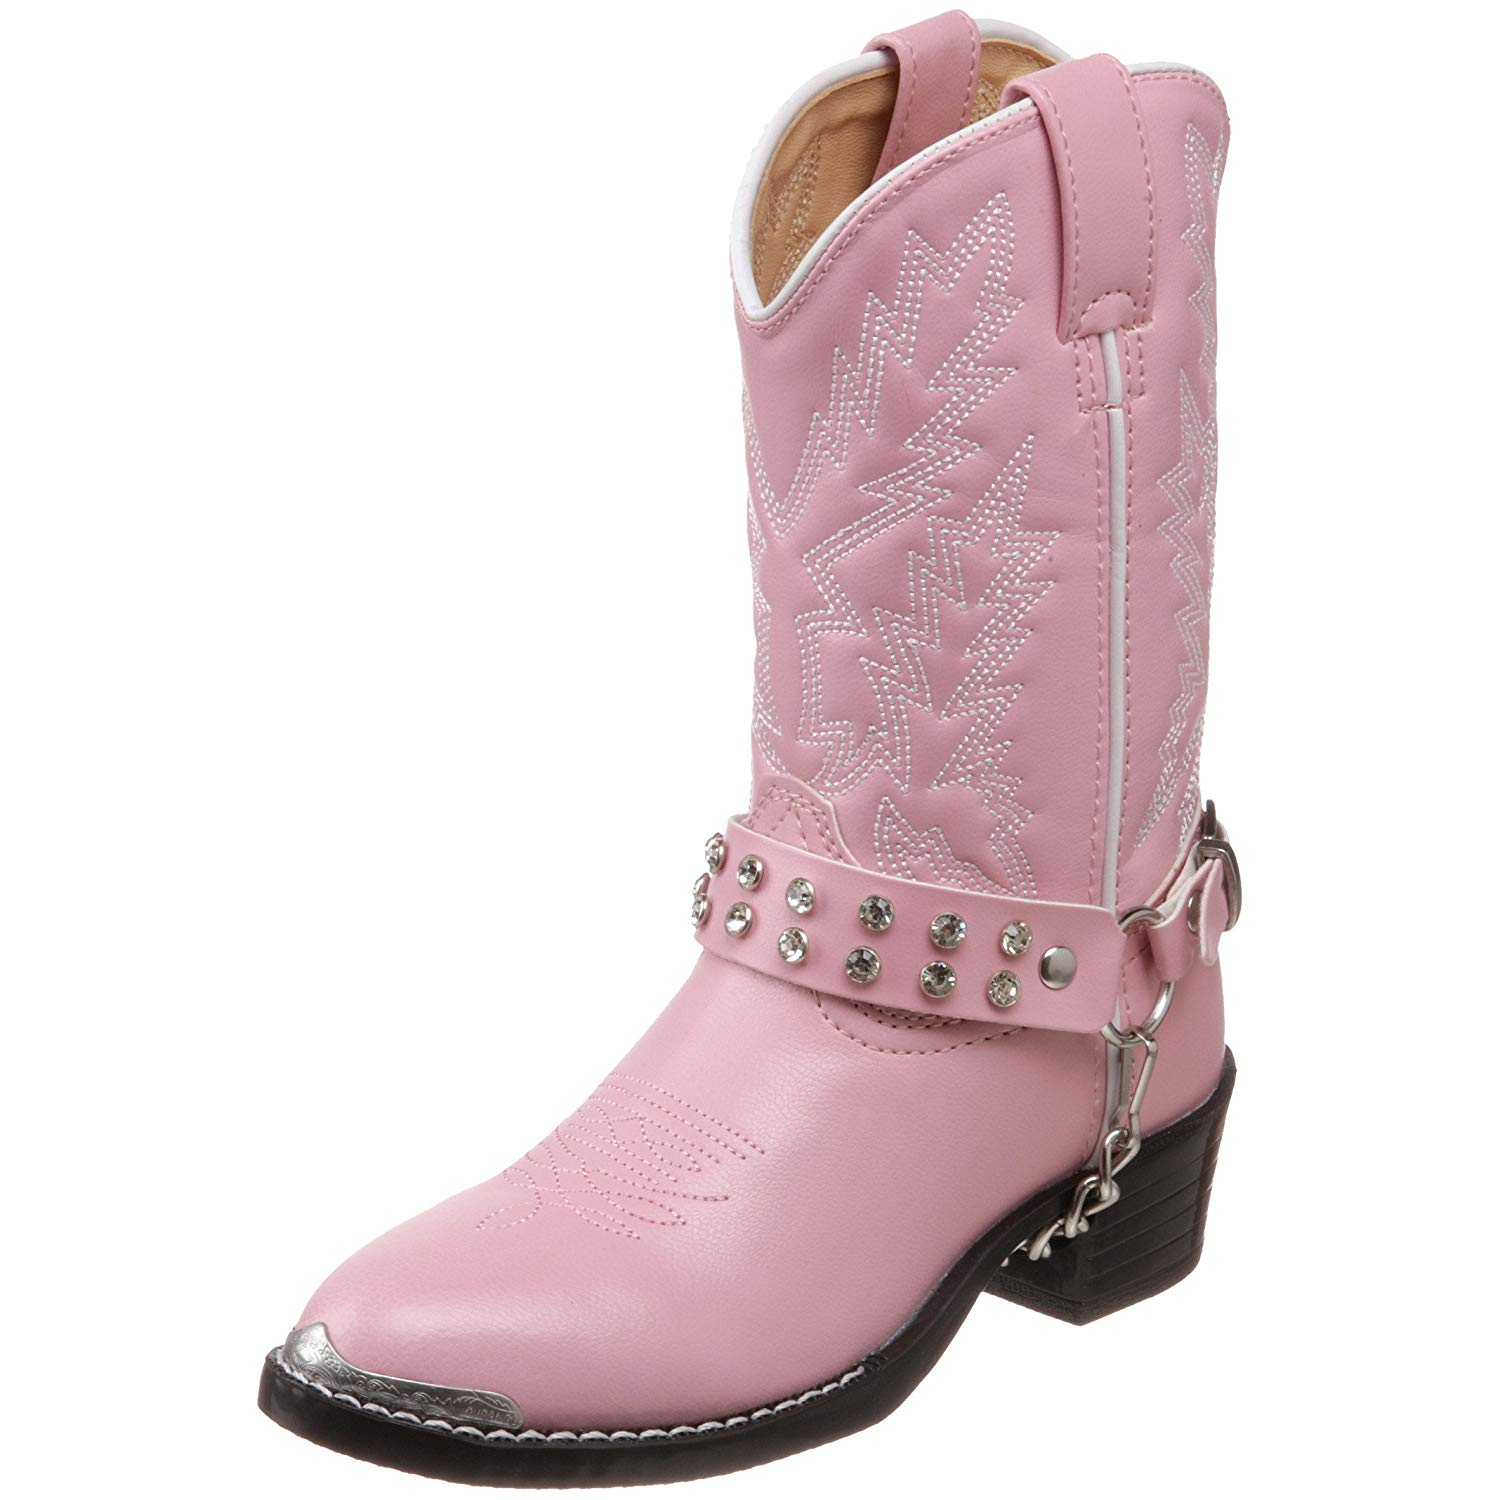 How to Wear Pink Cowboy Boots